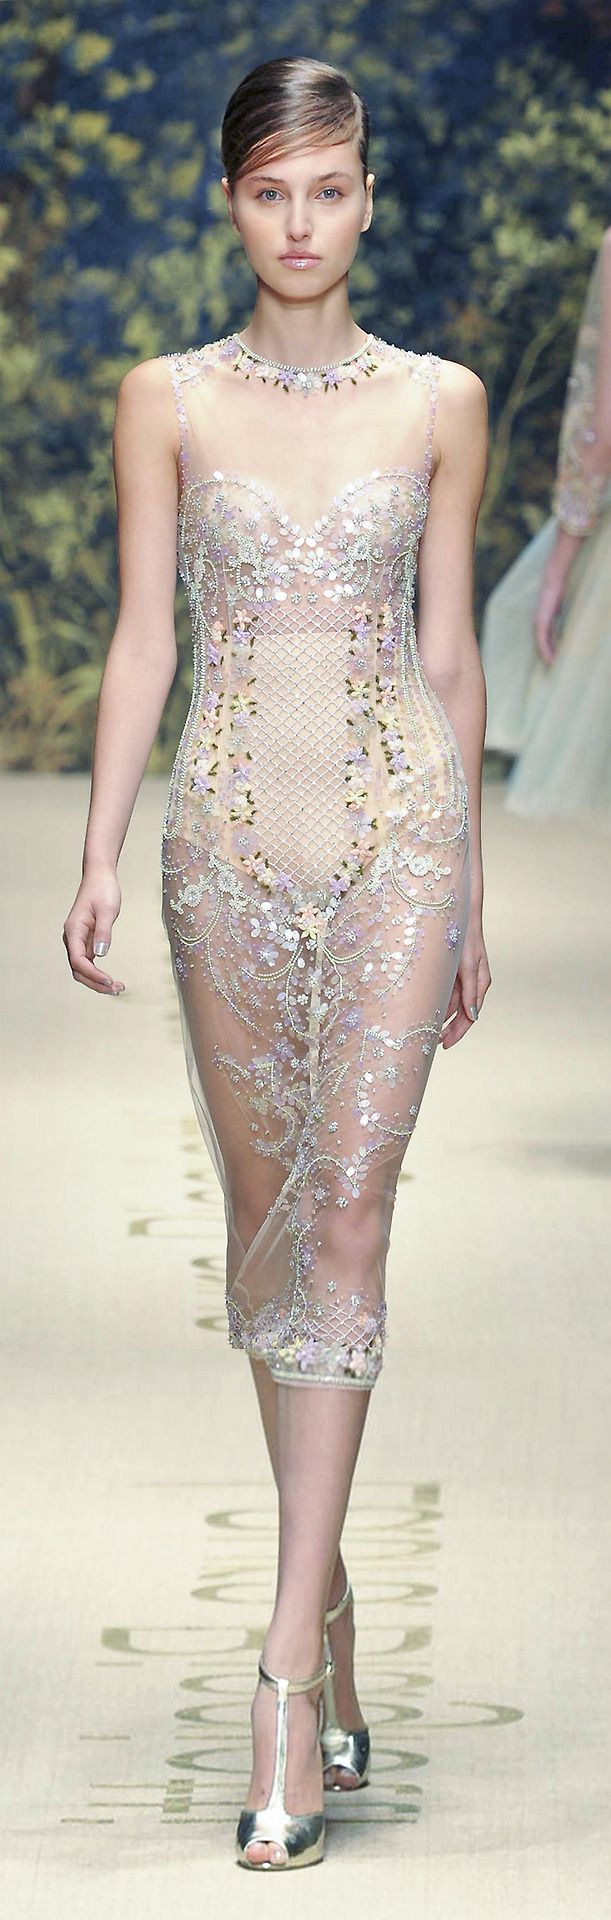 Laura Biagiotti SS 2014 ~Latest Trendy Luxurious Women's Fashion - Haute Couture - dresses, jackets, bags, jewellery, shoes